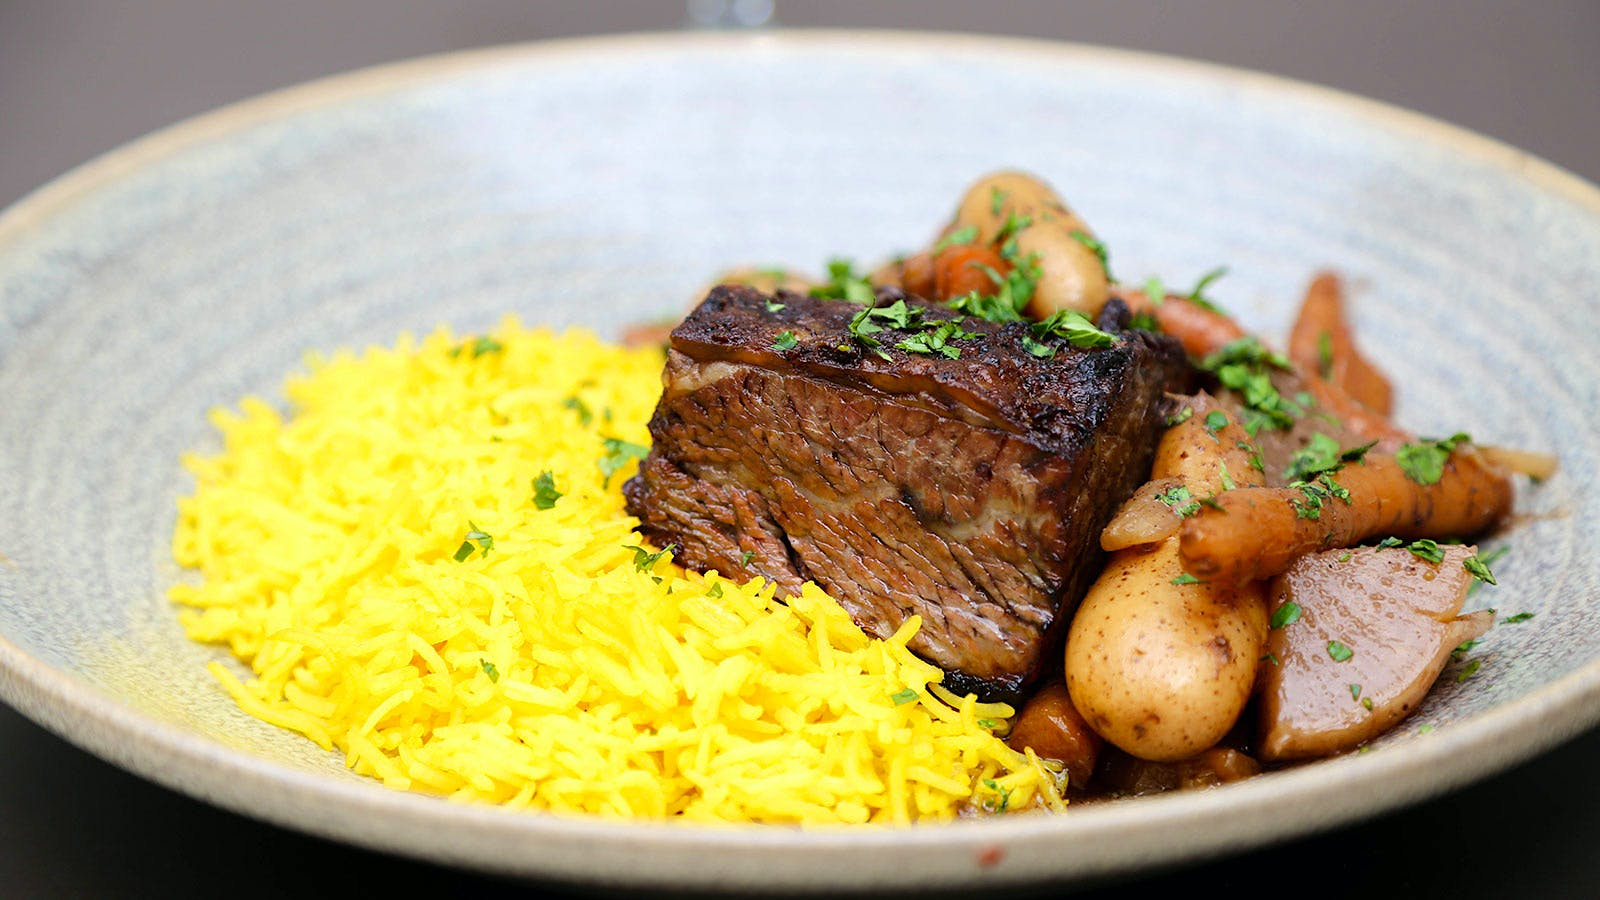 Short ribs with carrots, potatoes and saffron rice